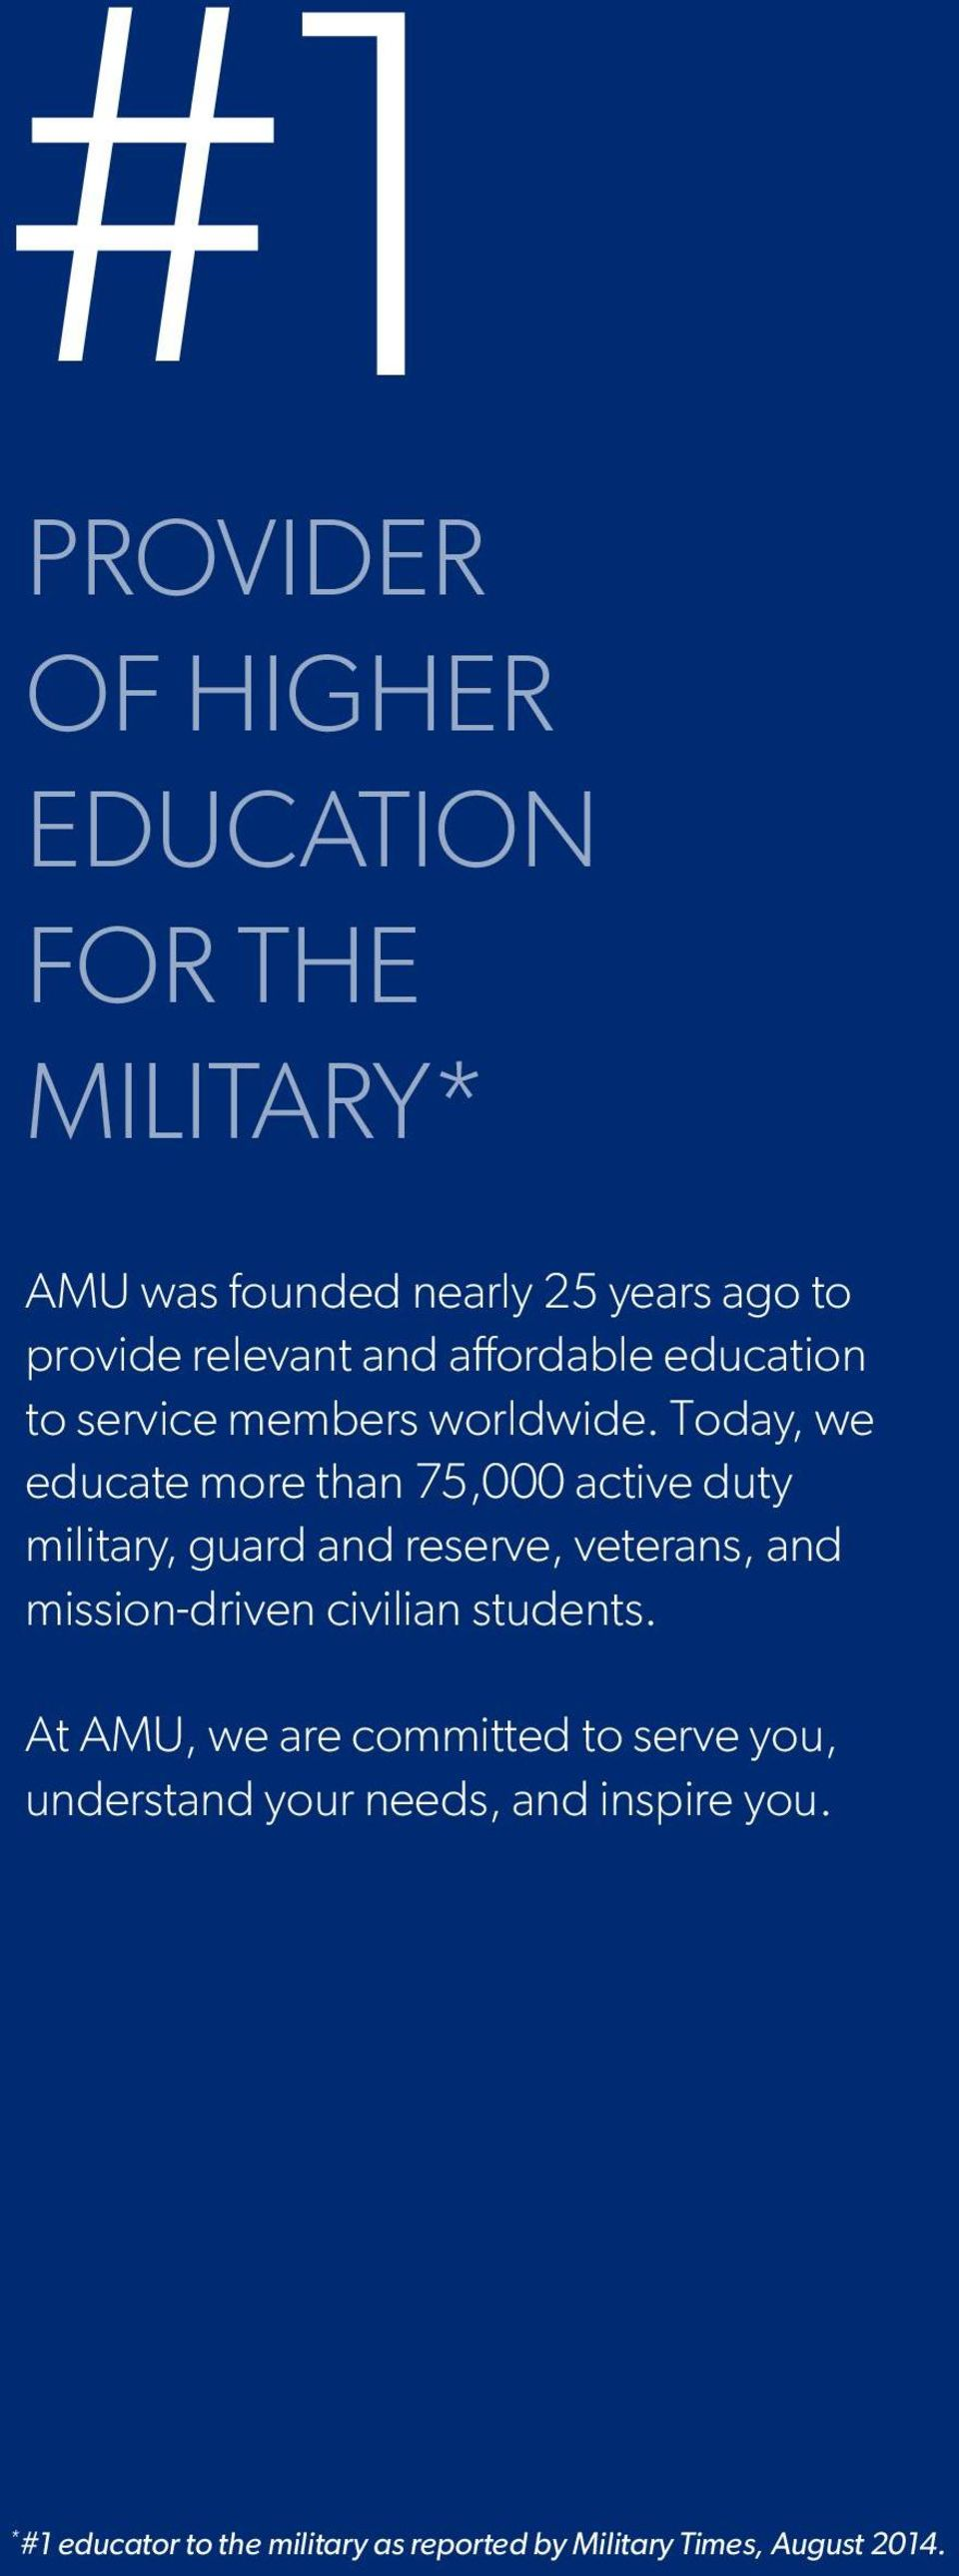 Today, we educate more than 75,000 active duty military, guard and reserve, veterans, and mission-driven